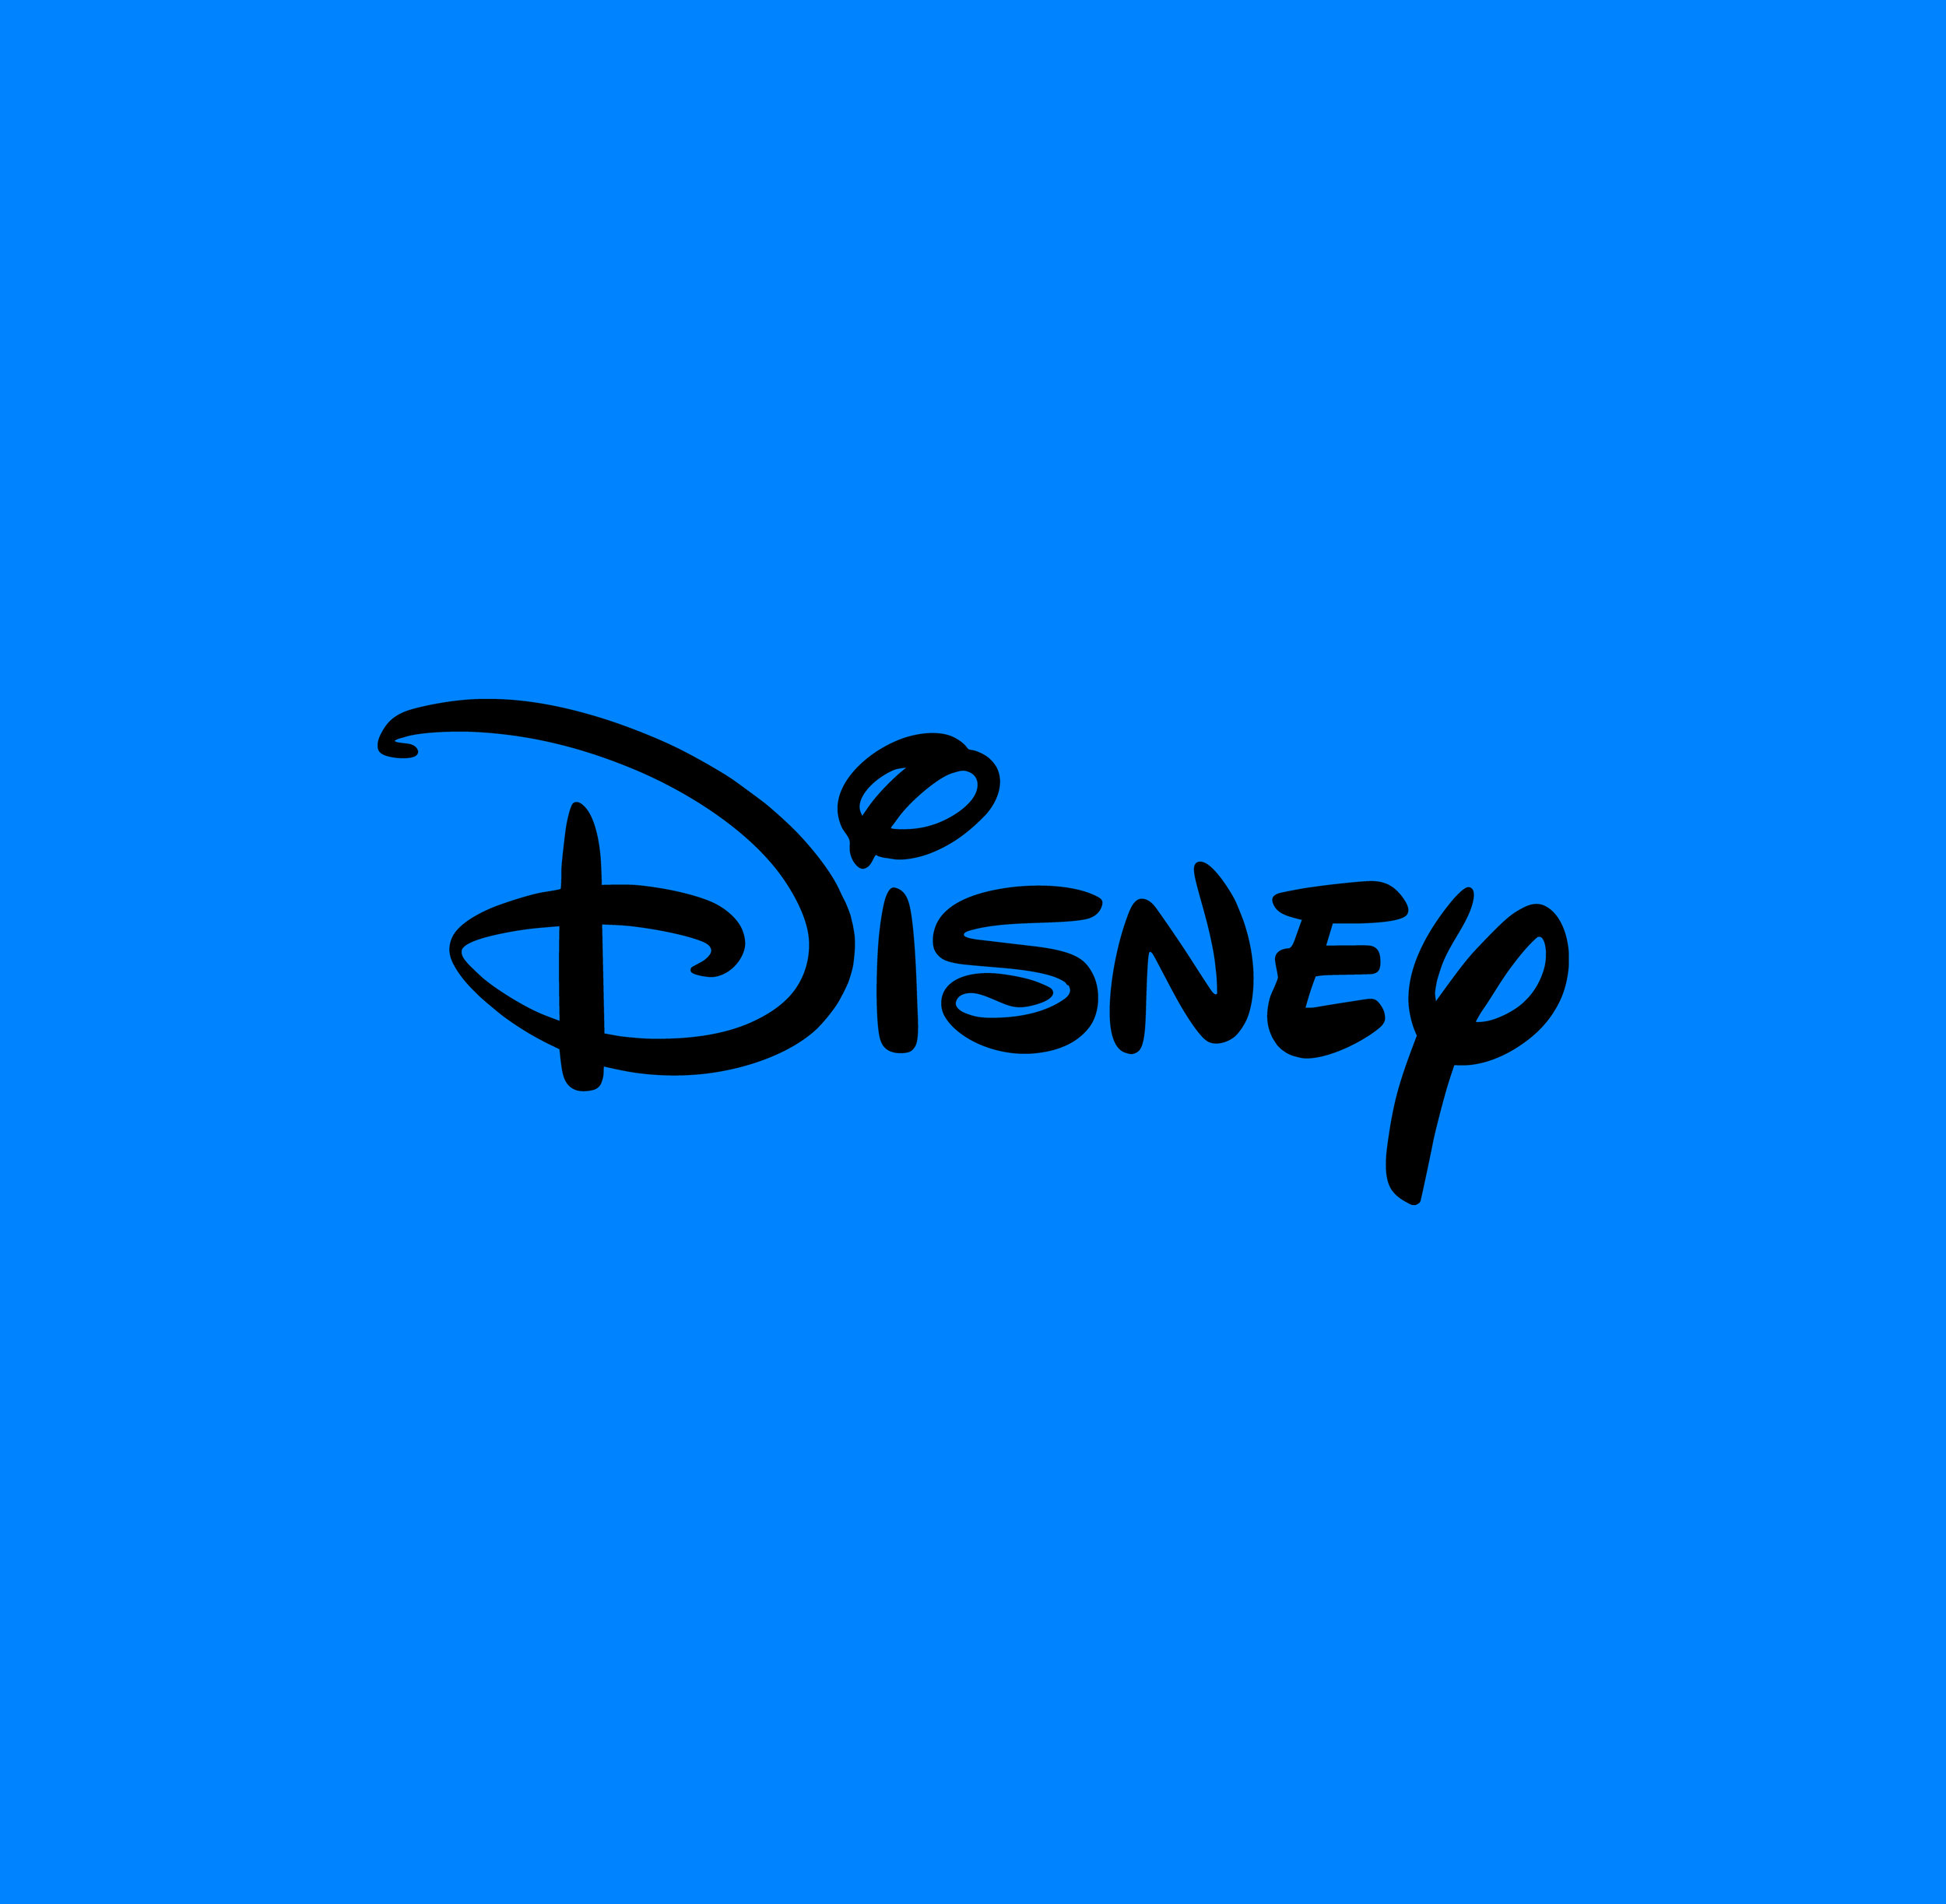 Disney-logo-png-transparent-download.jpg